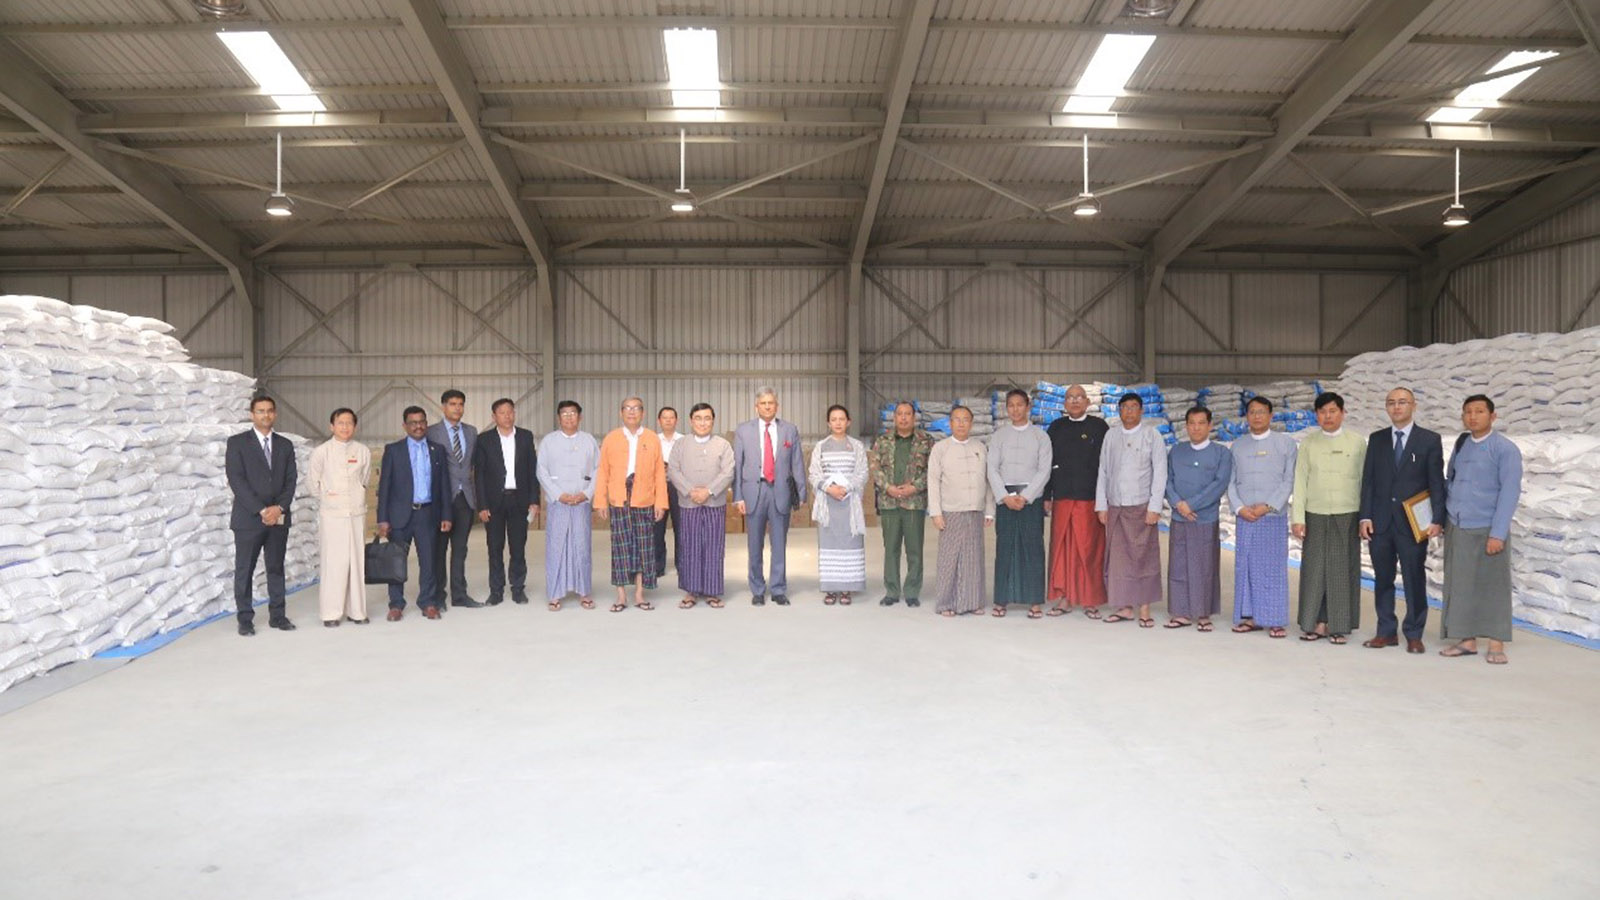 Union Minister Dr Win Myat Aye poses for a group photo at the ceremony to hand over the supplies donated by the Government of Indian at a port in Sittway on 21 January 2020.